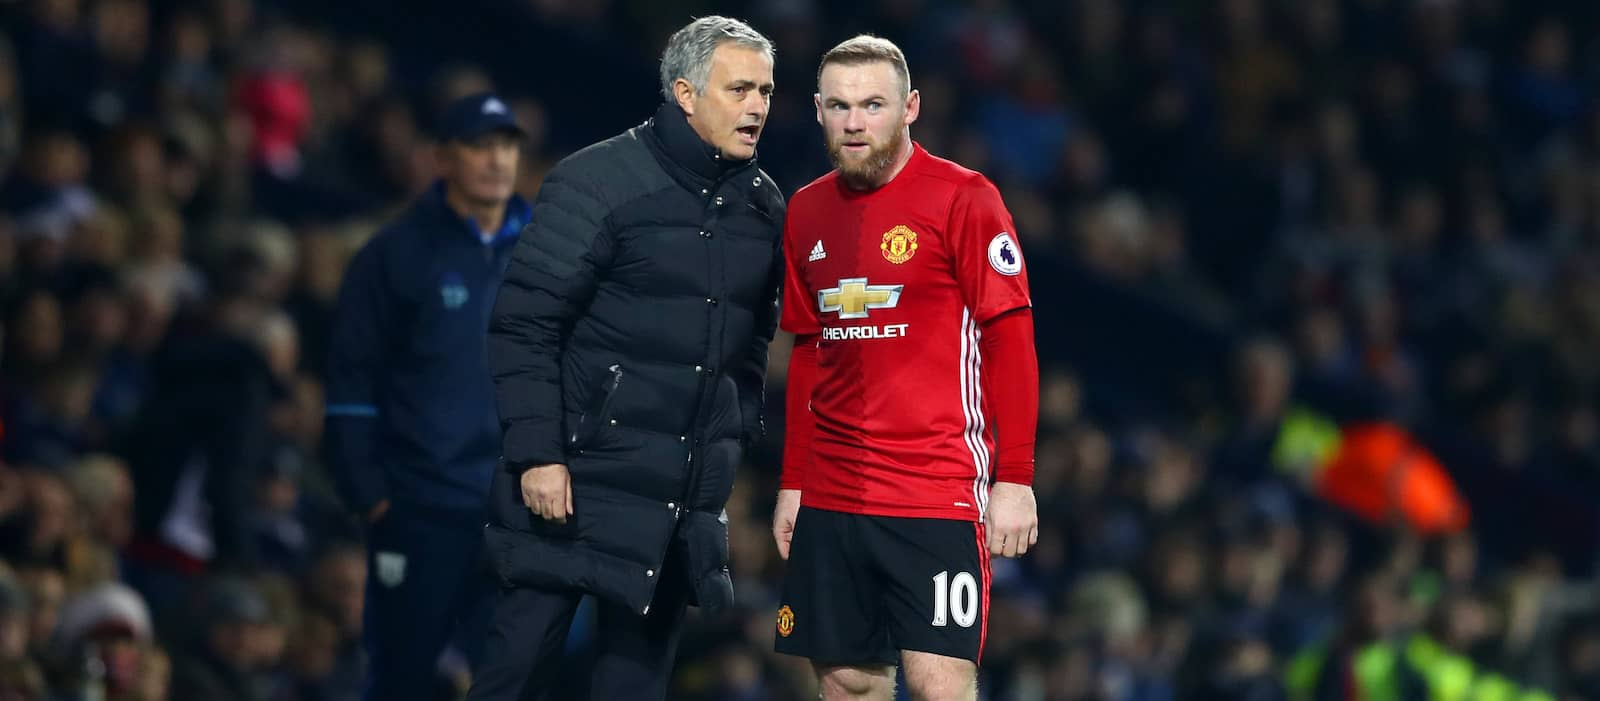 Wayne Rooney confident Jose Mourinho will challenge for the title this season